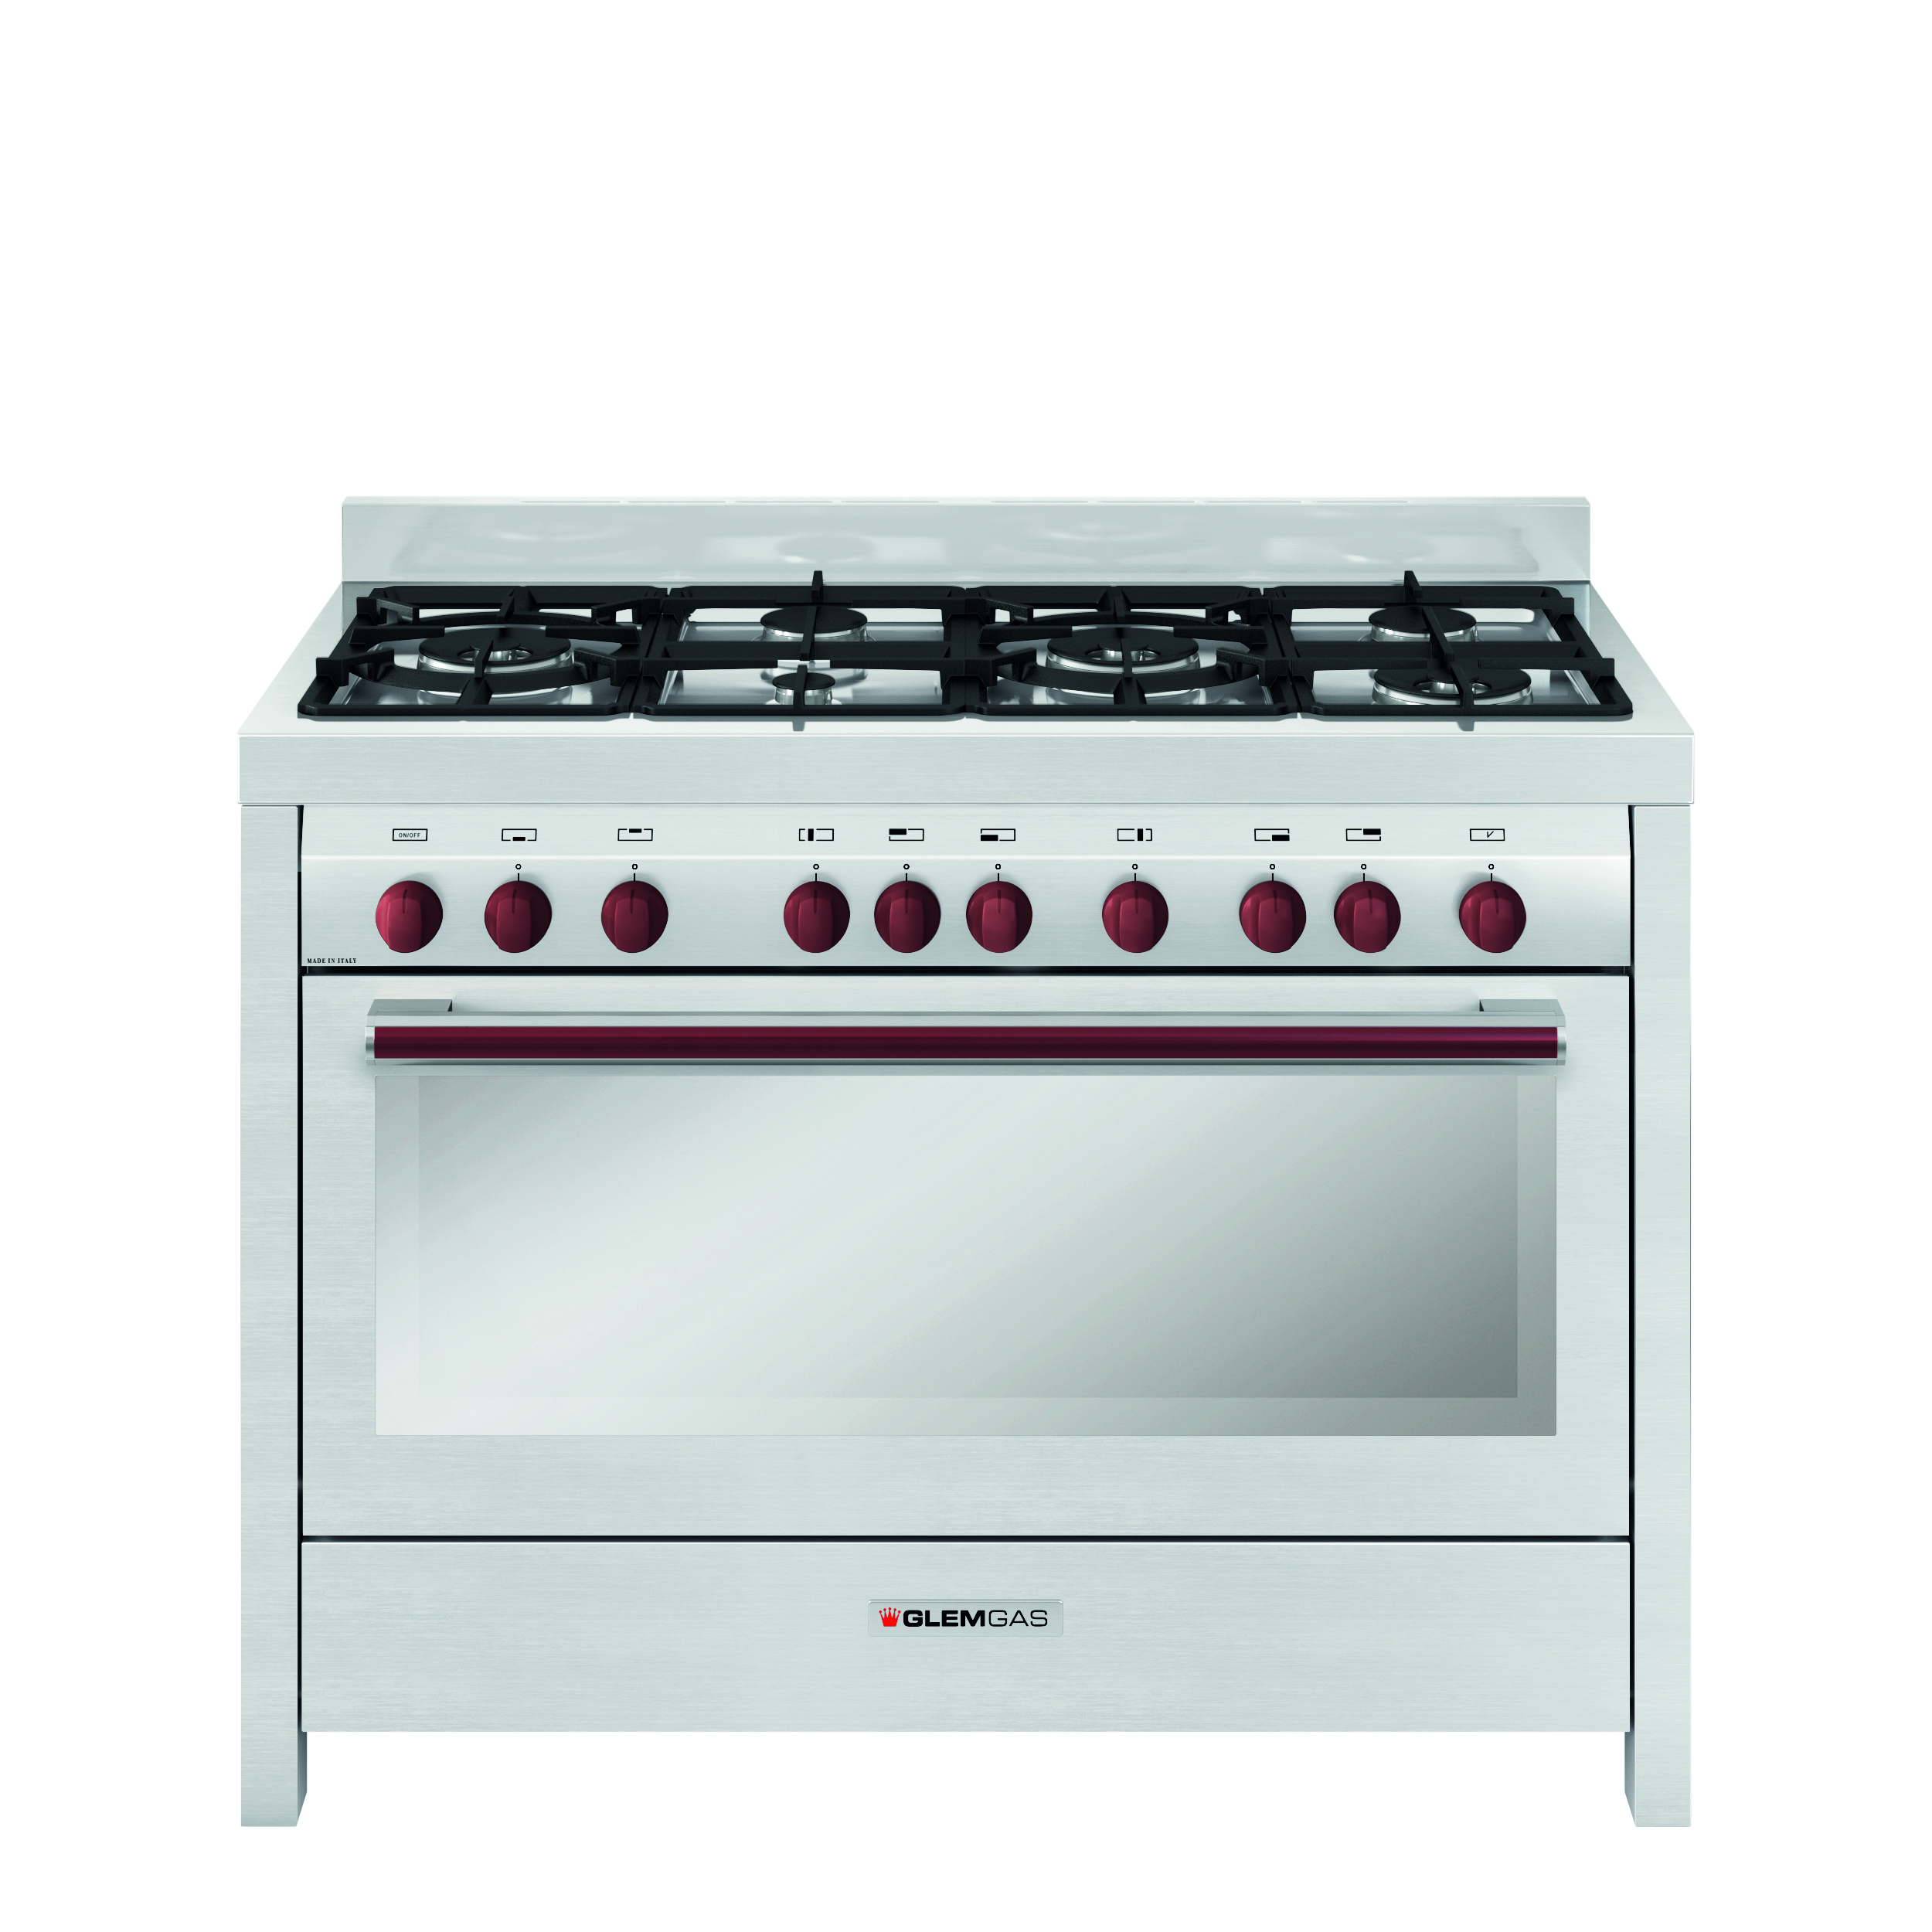 The New Gas Cooker Branded Glem, MAGNIFICA Part 31